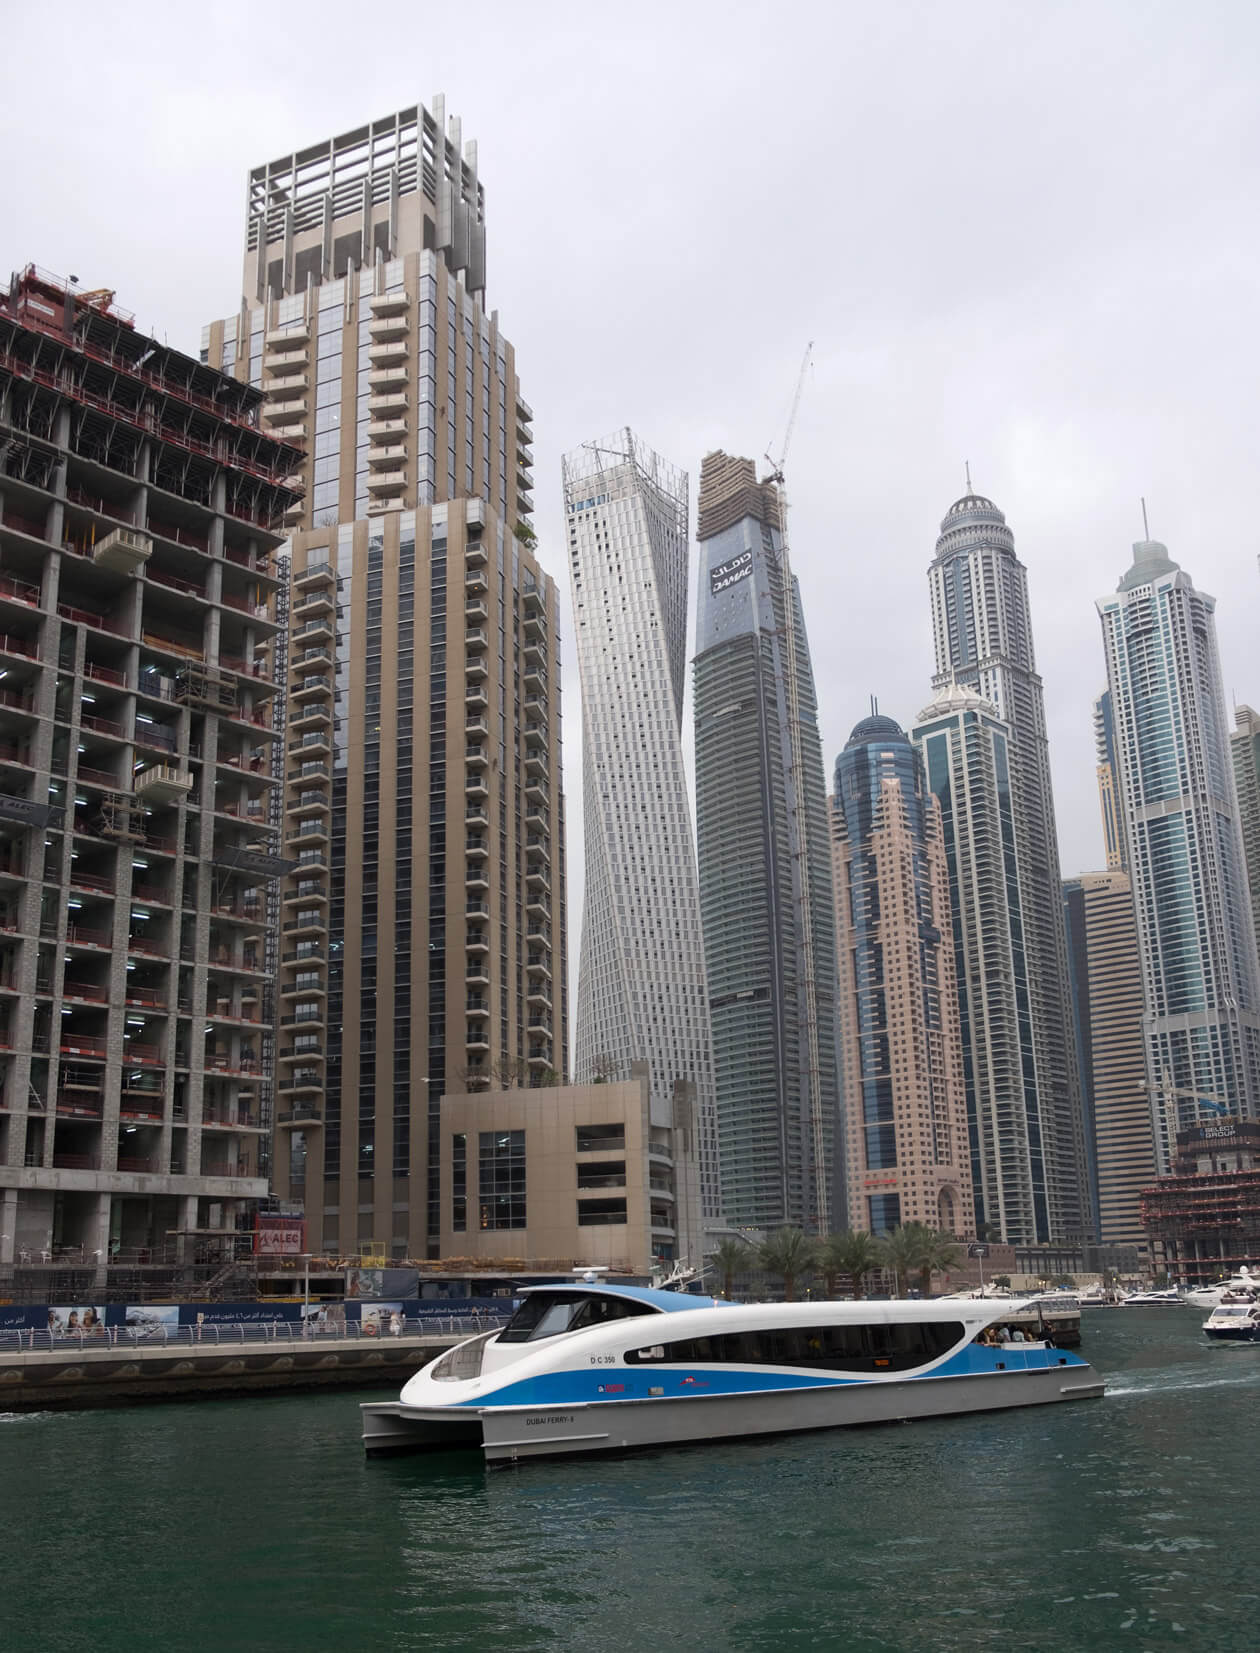 The spaceship-like water bus arriving at Dubai Marina